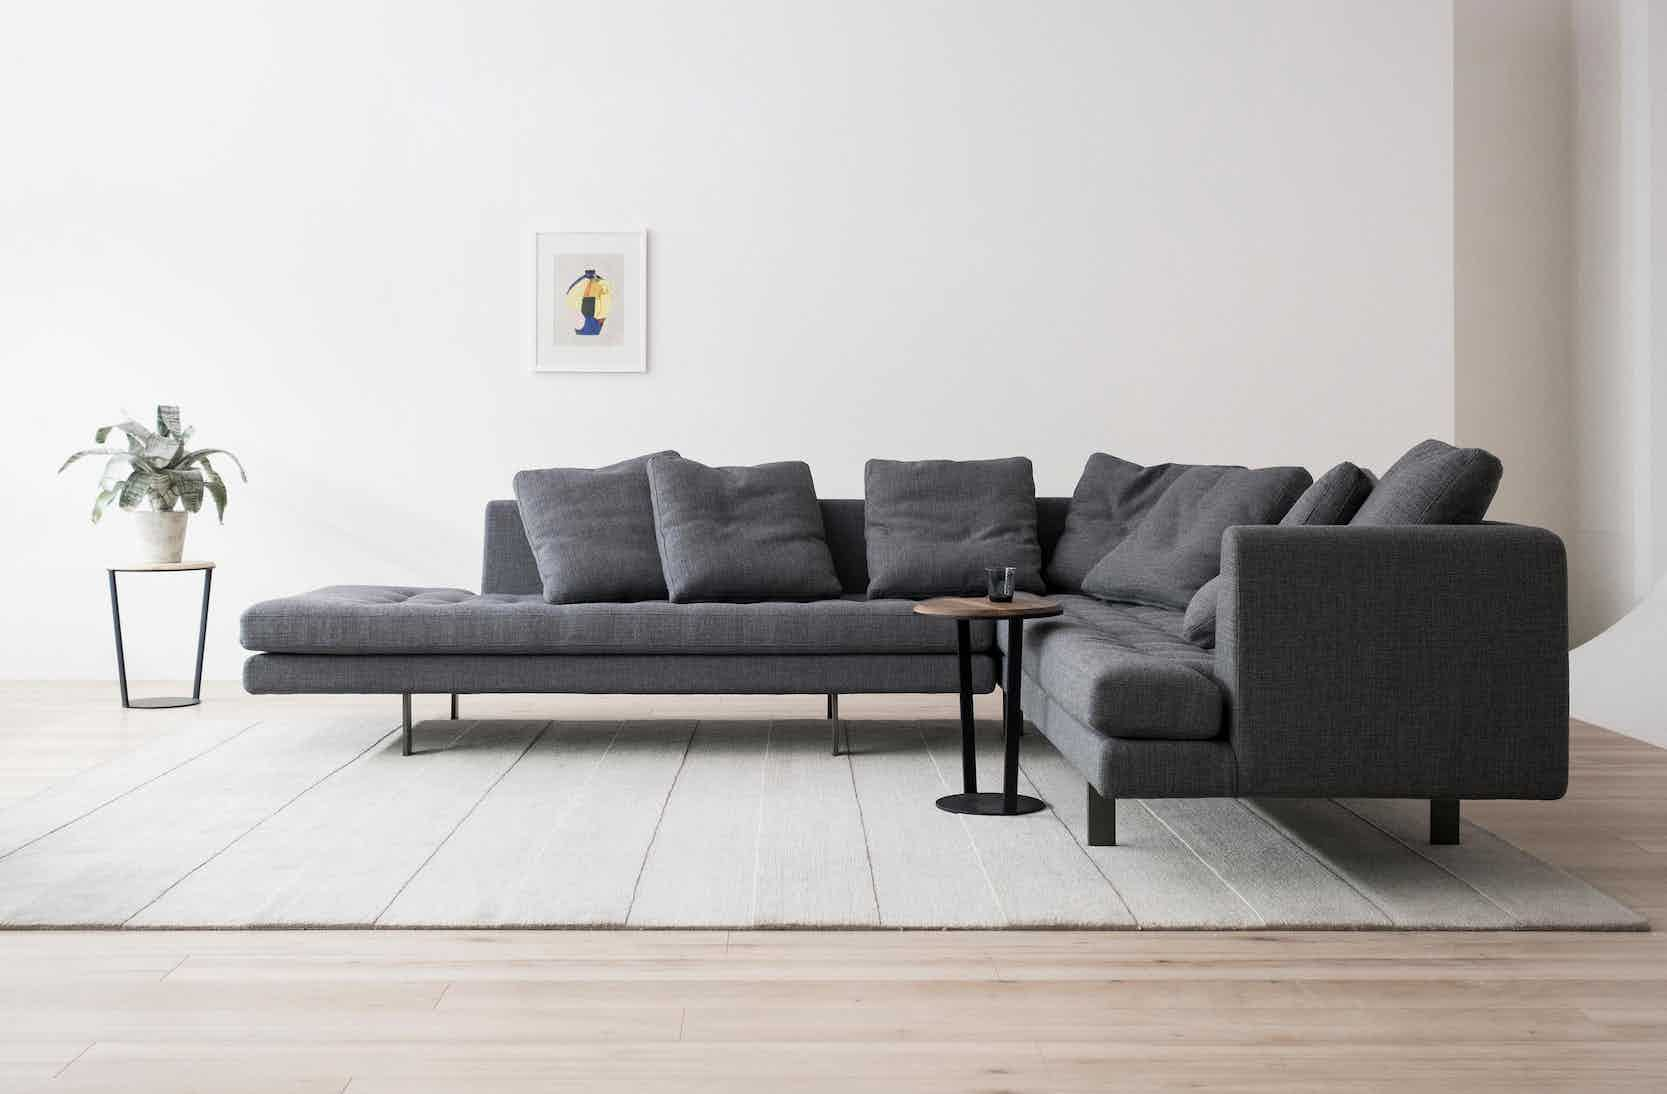 Edward Sectional Sofa by Bensen, now available at Haute Living